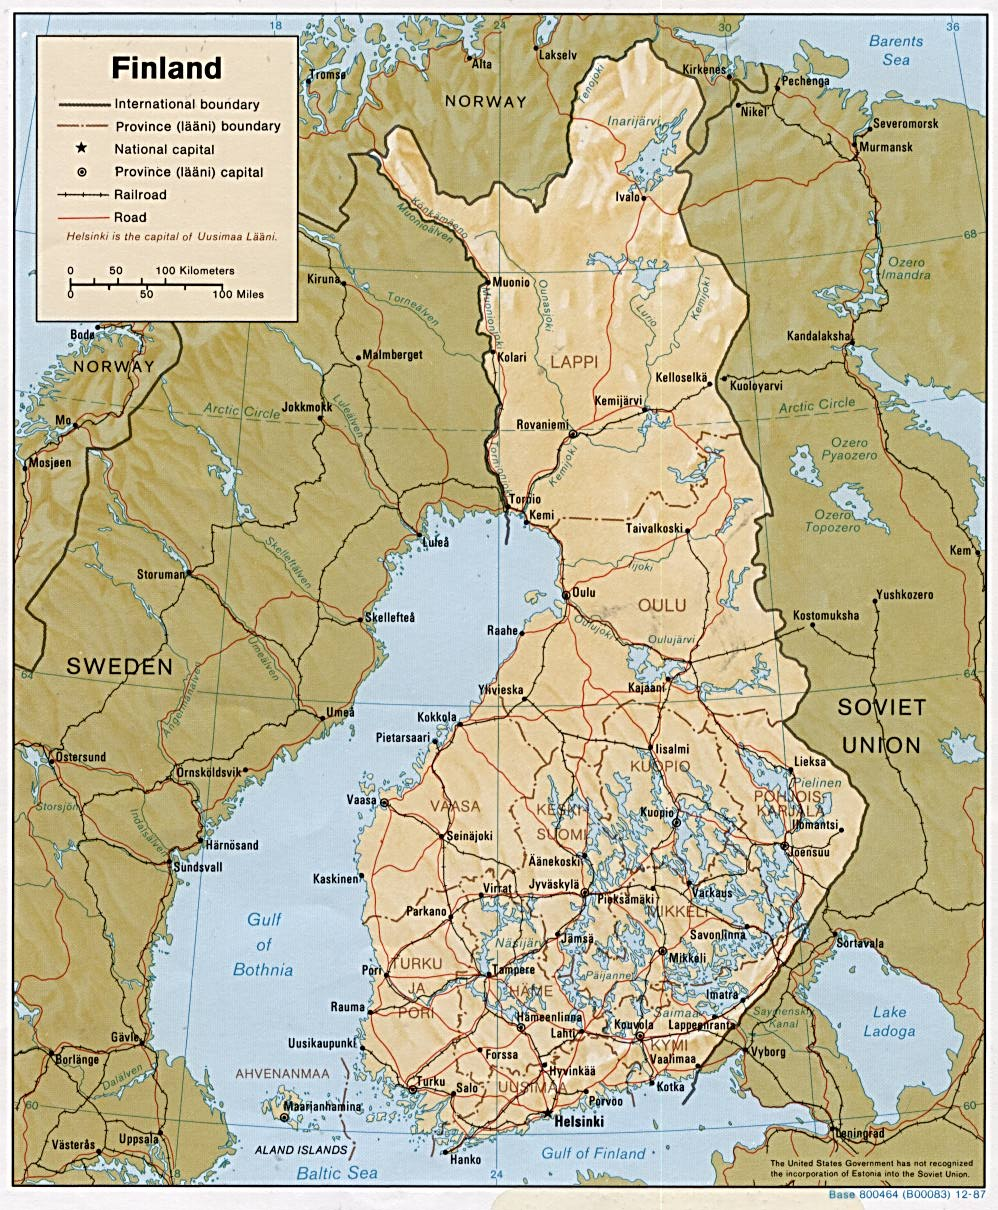 Download free finland maps gumiabroncs Choice Image